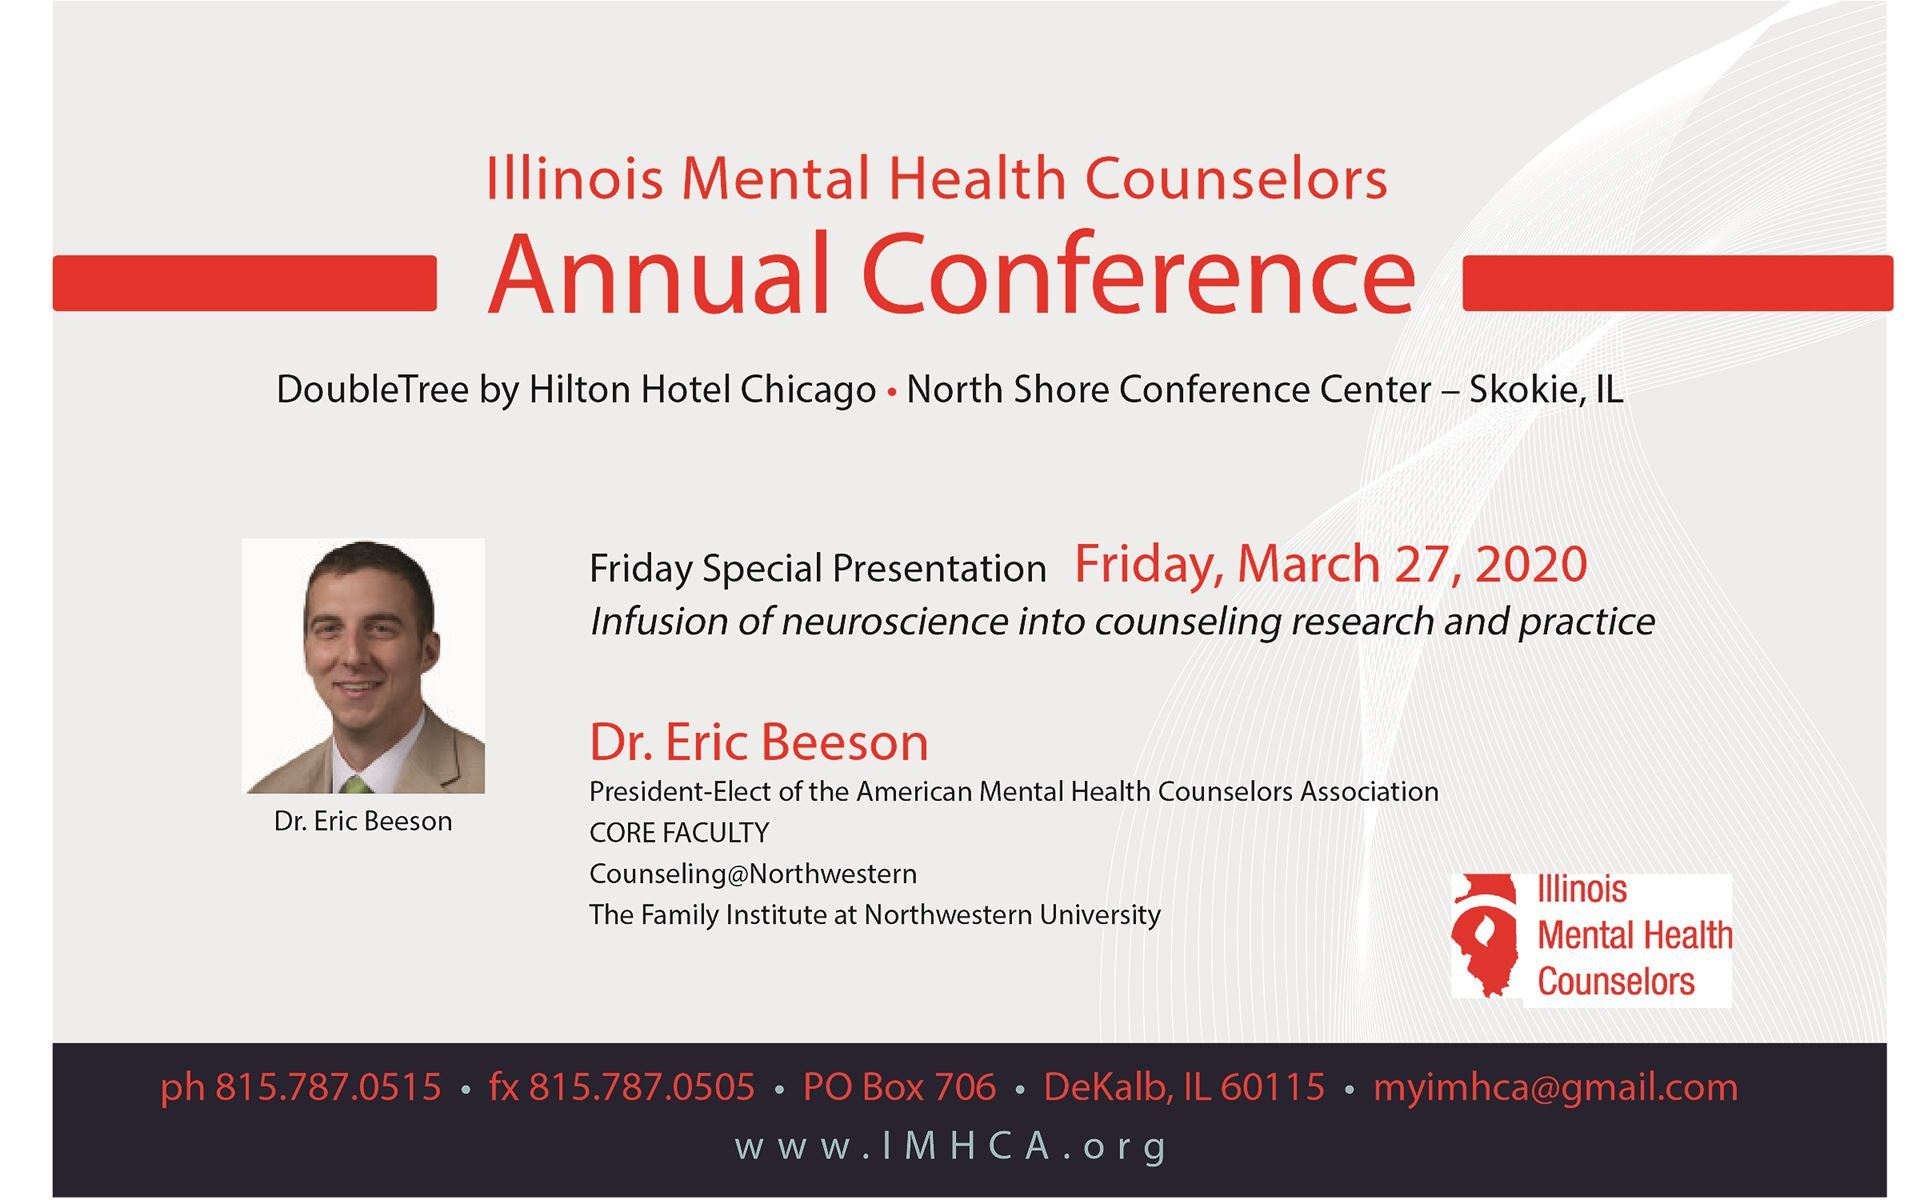 Imhca Annual Conference Friday